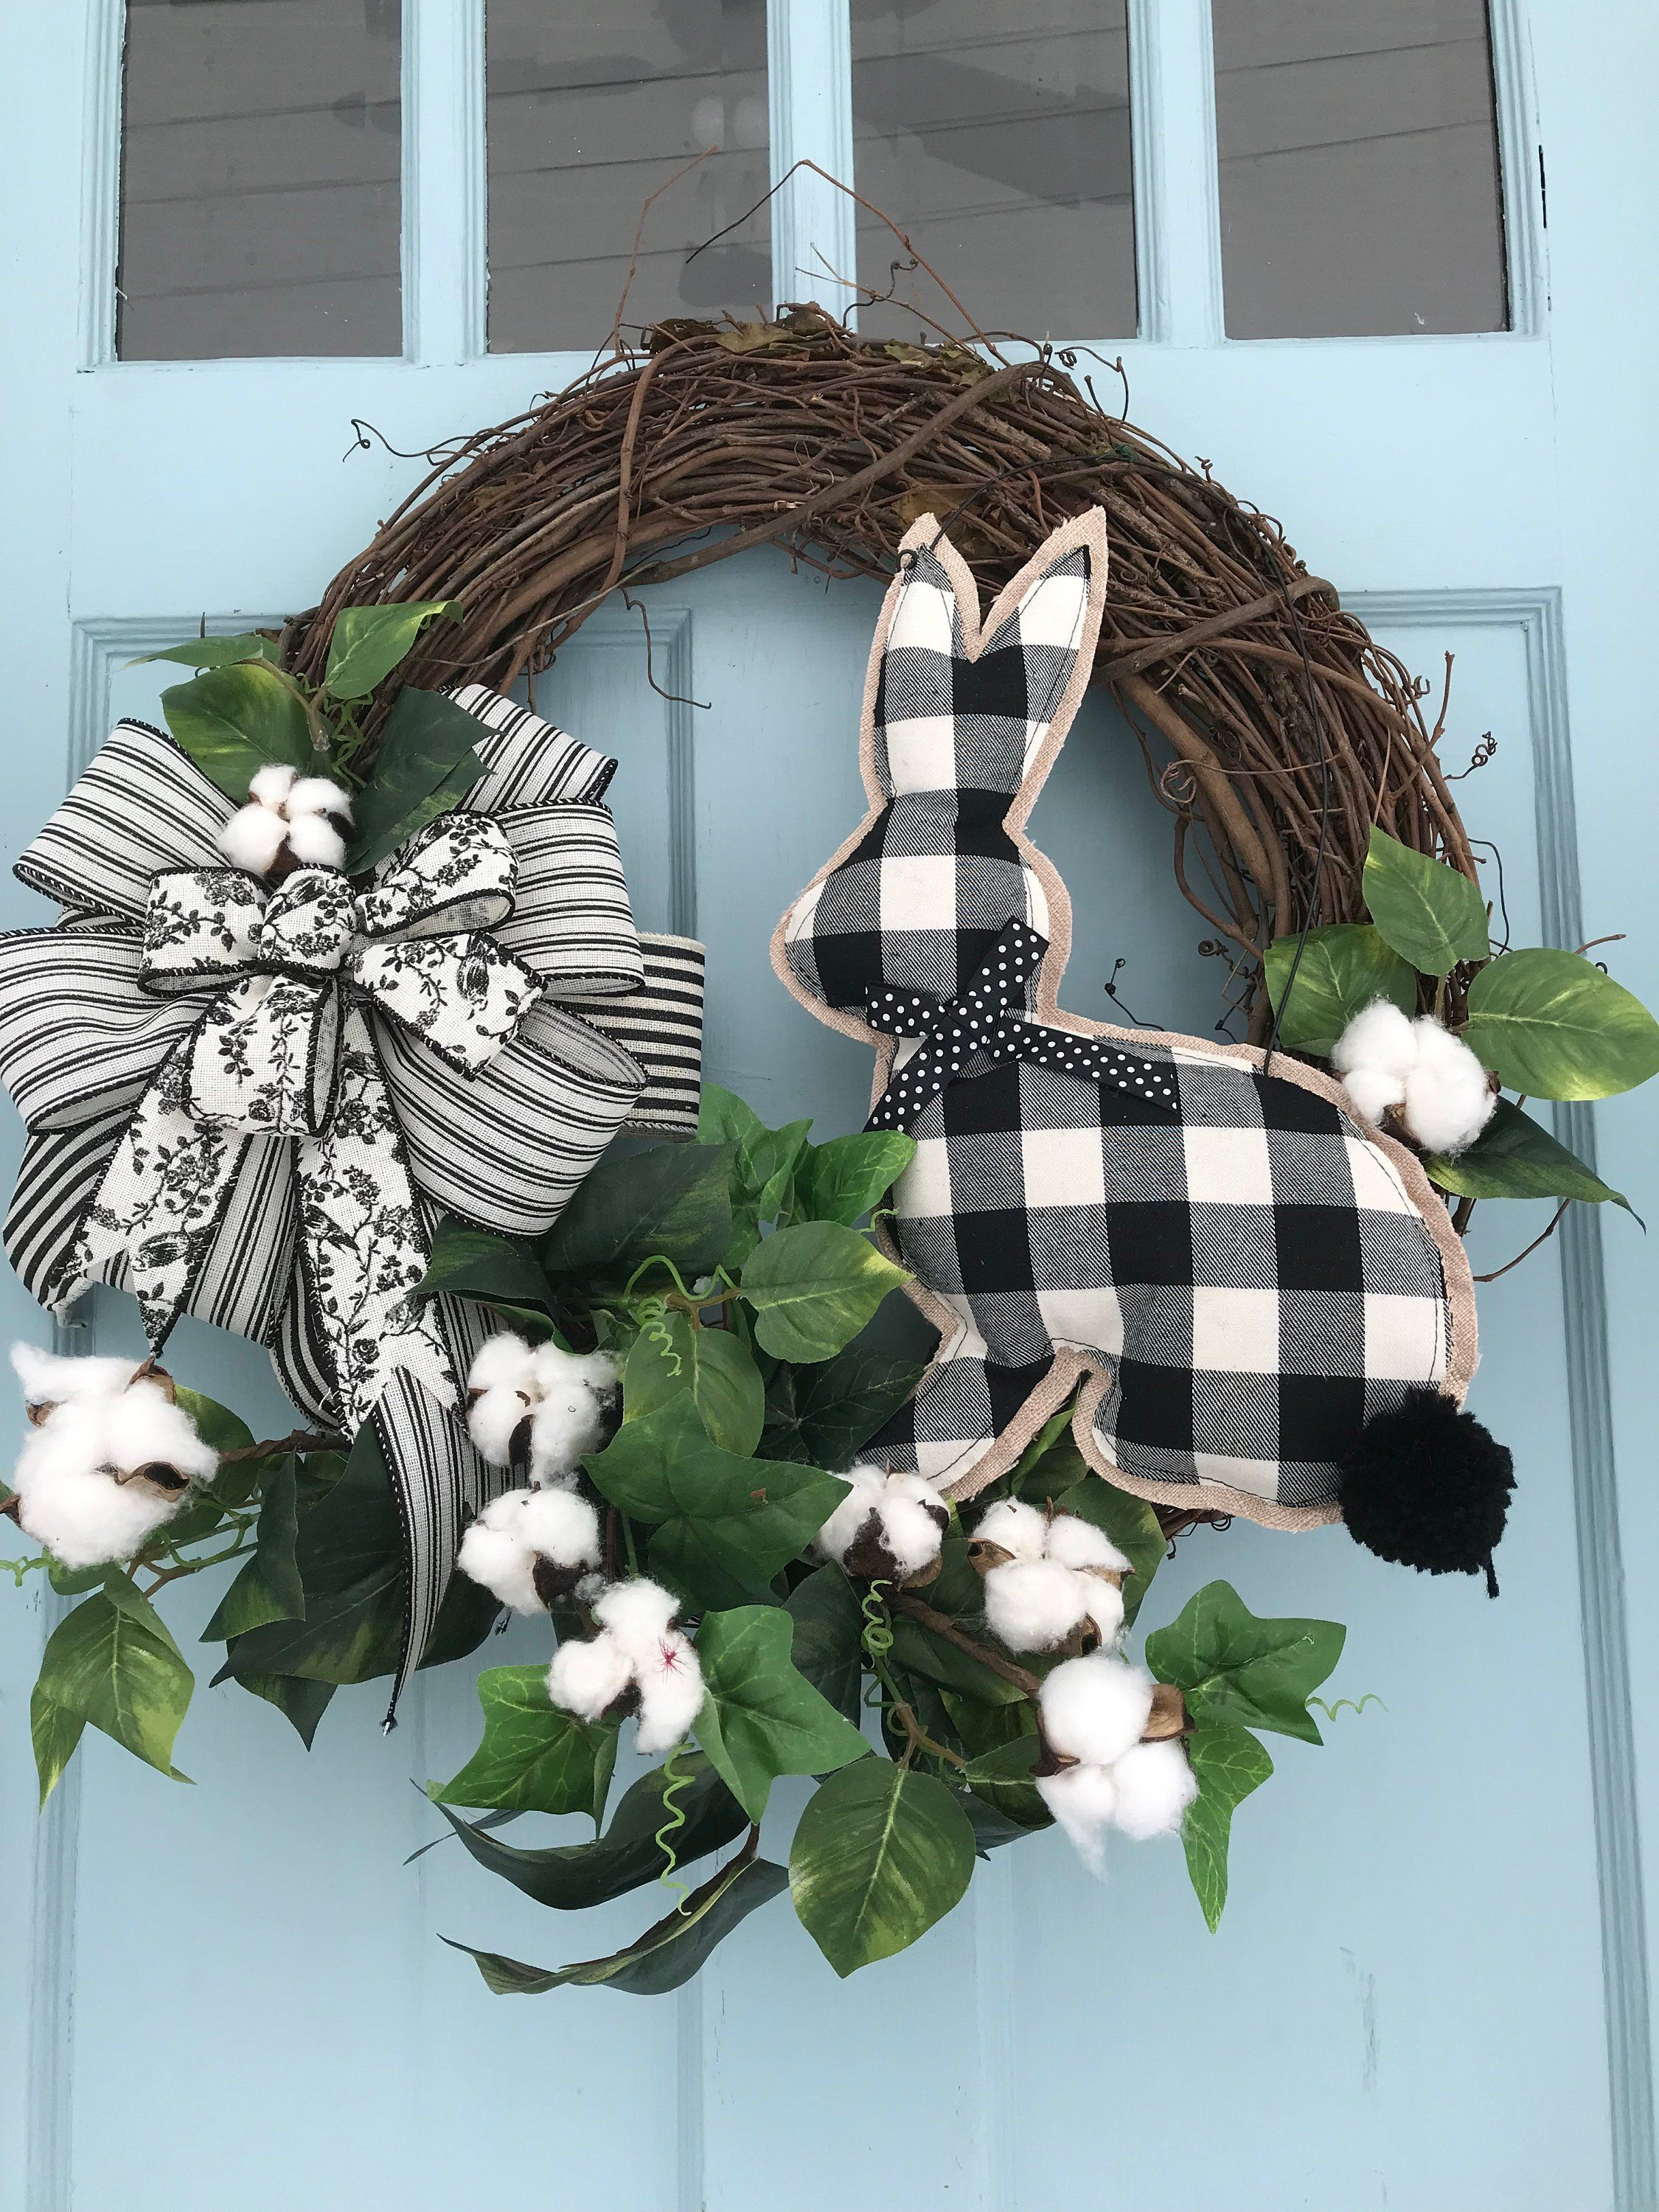 Photo of black and white plaid bow & bunny Cotton Accents Elegant All Season Grapevine Wreath for Door. Wreaths, wreaths for front door,  farmhouse,